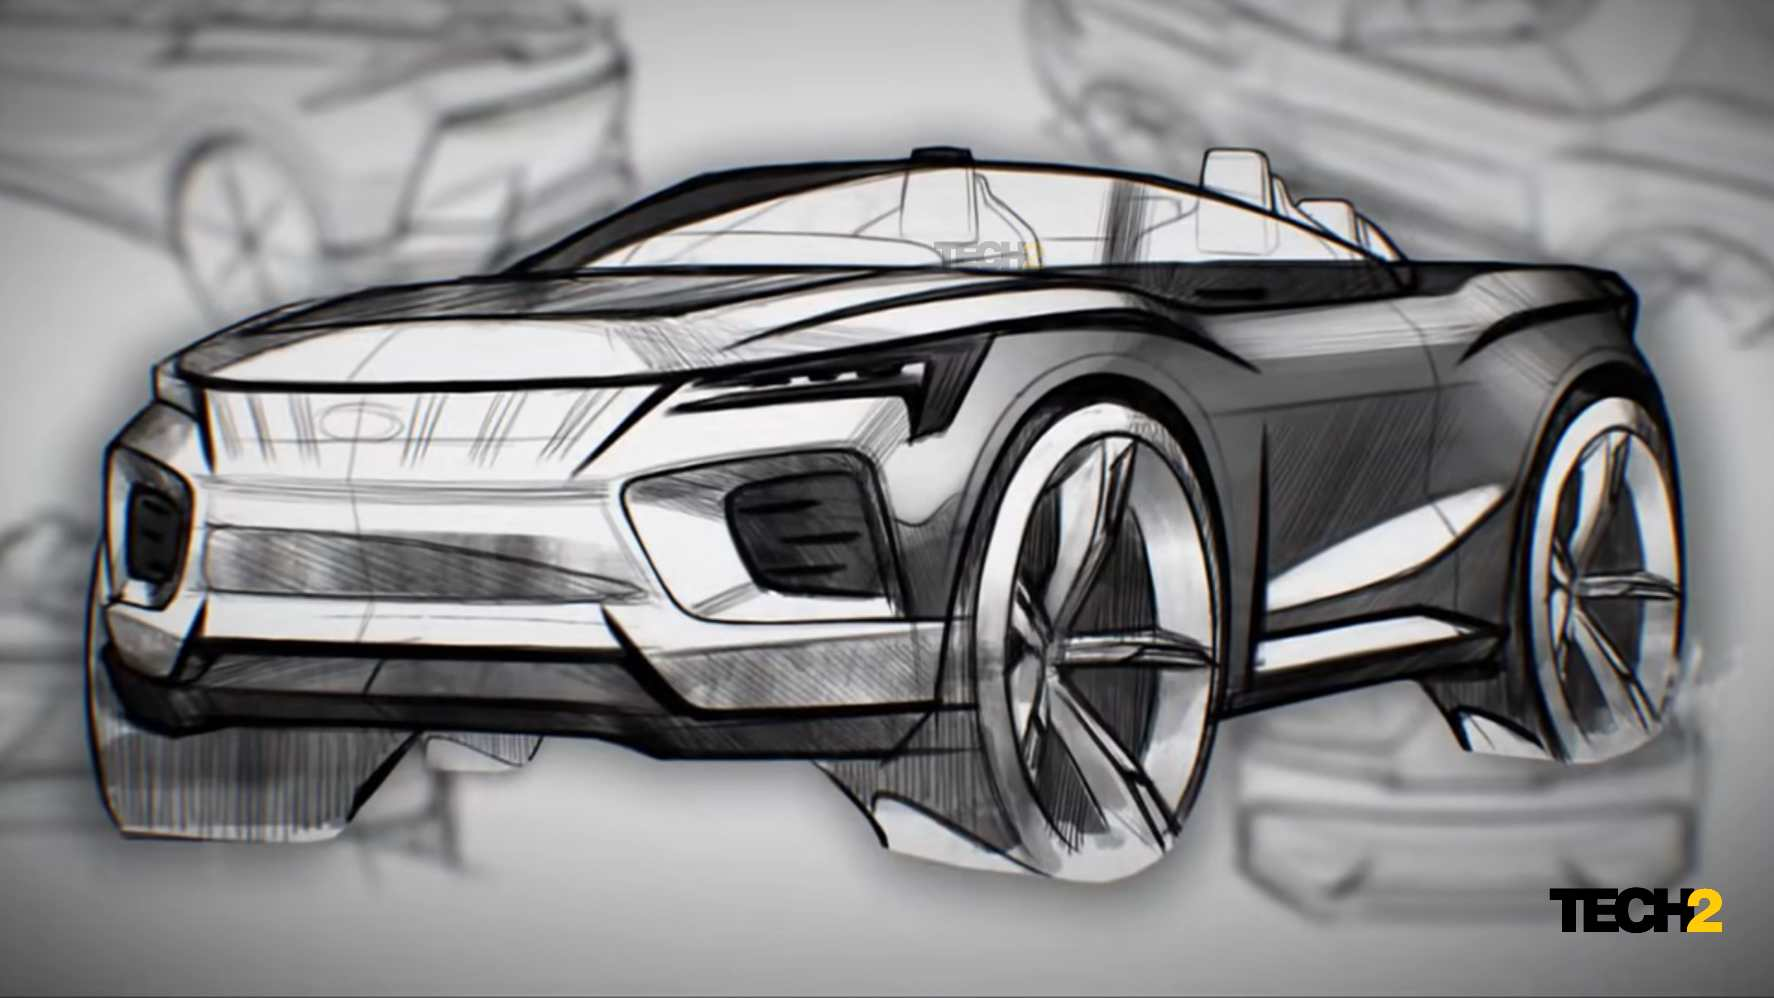 Mahindra sets up 'Advanced Design' centre in the UK to shape future cars, electric SUVs- Technology News, Gadgetclock